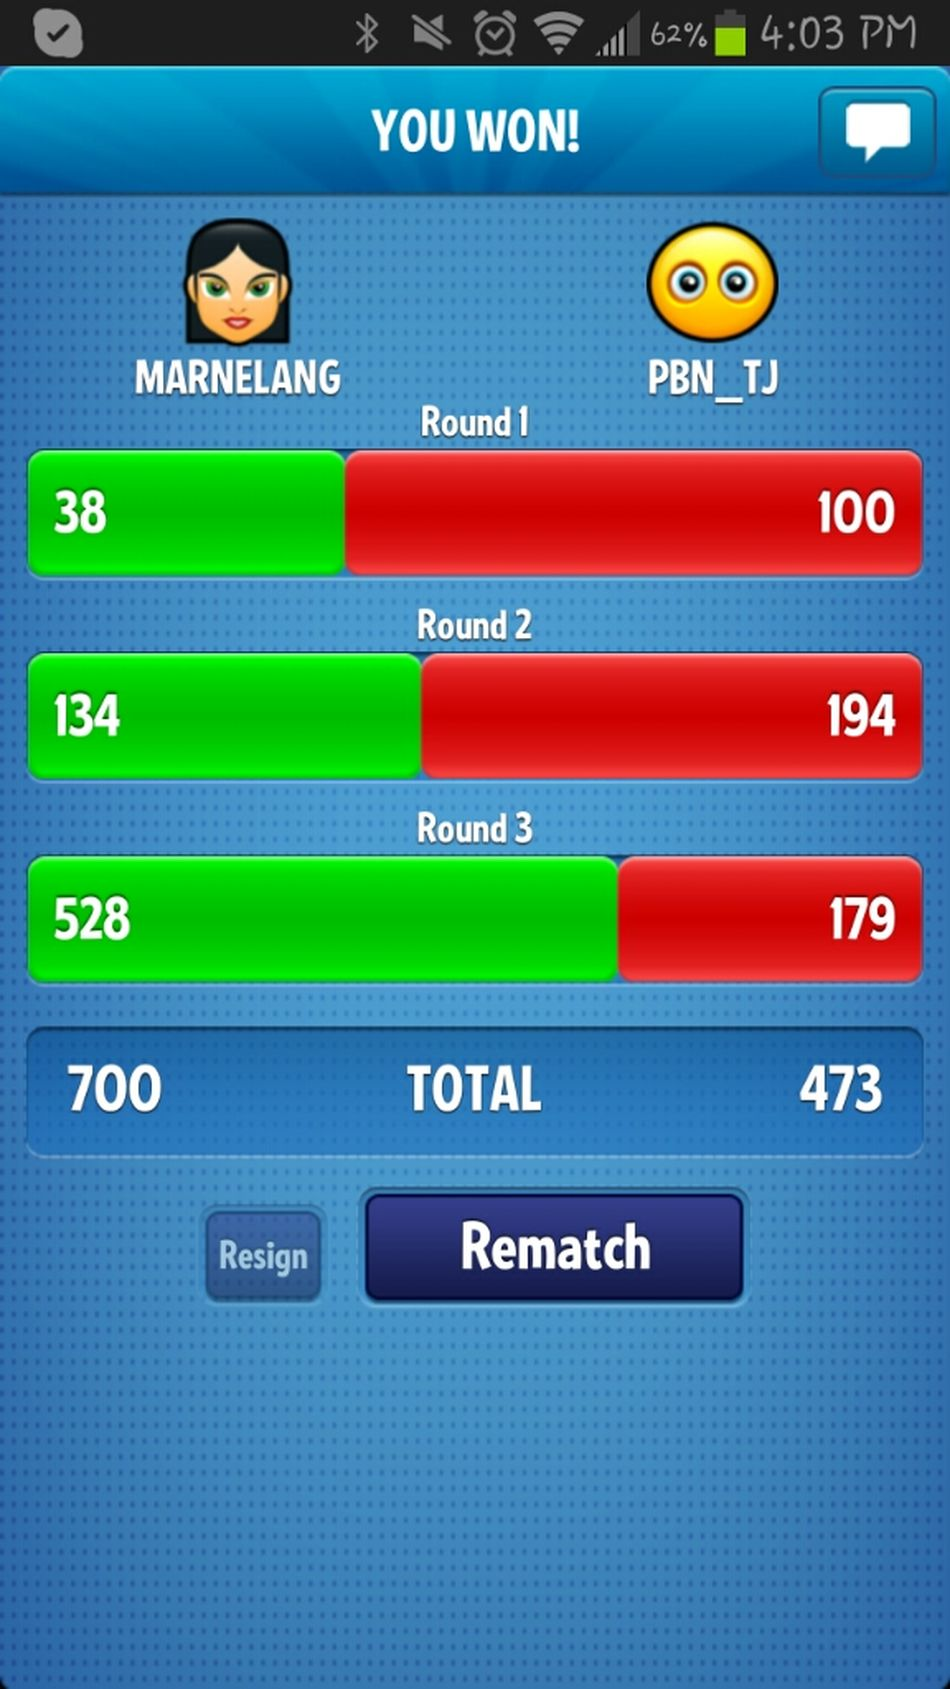 lol beat Ted in Ruzzle :)